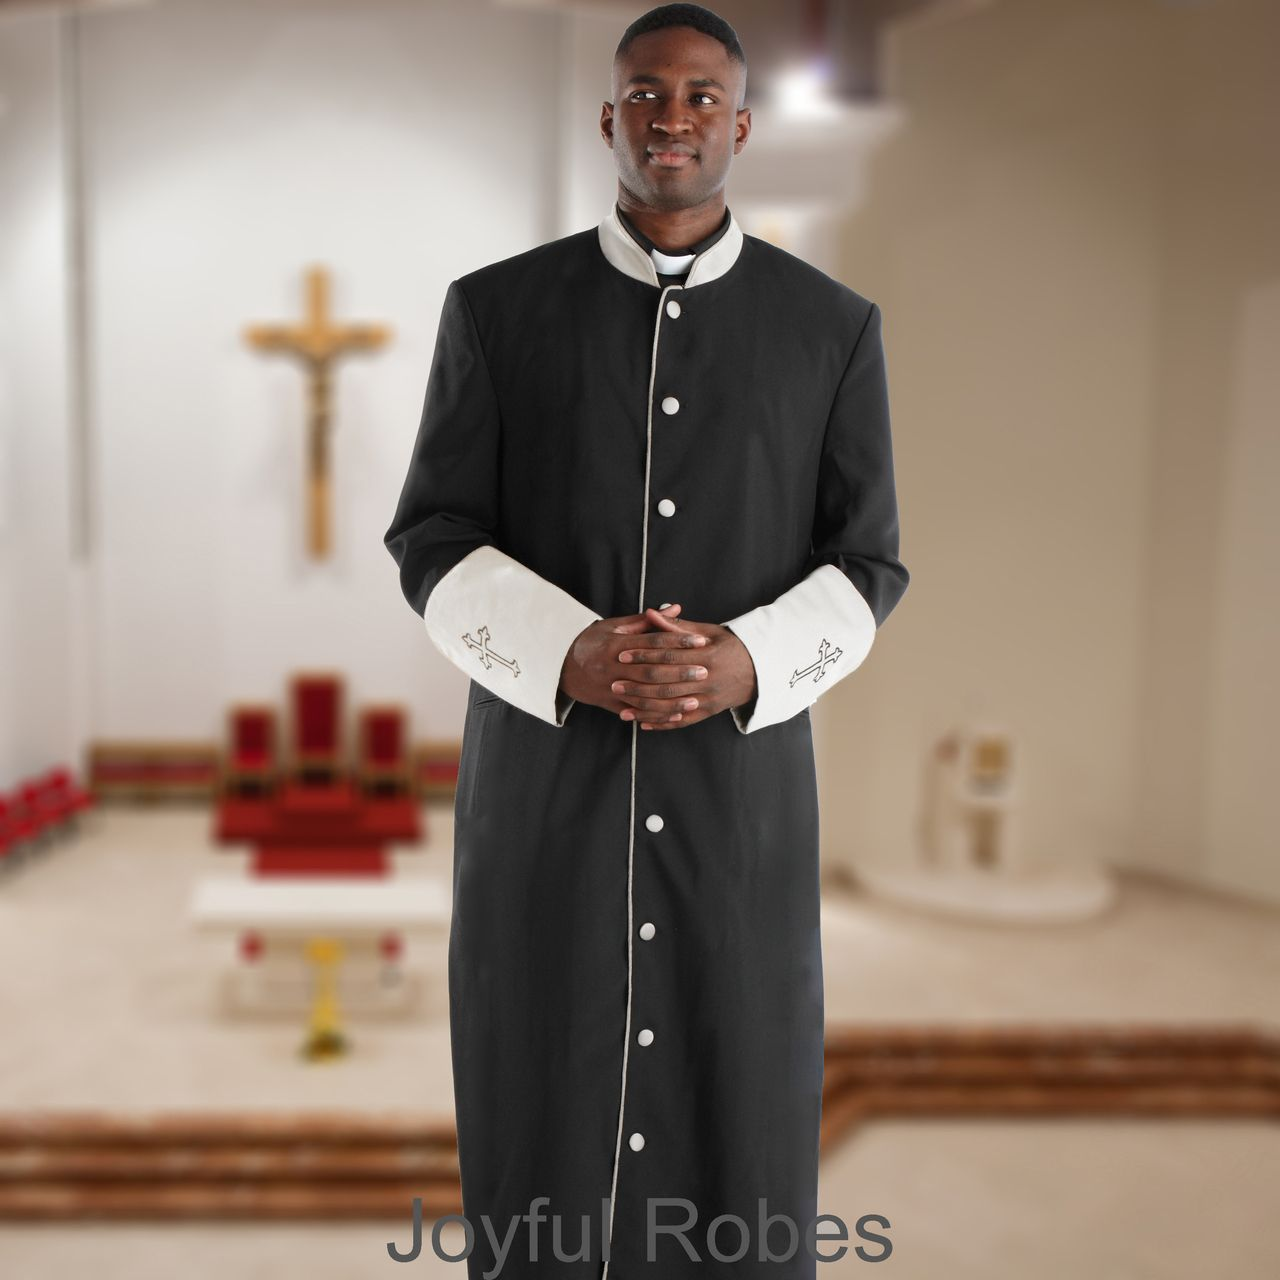 305 M. Men's Pastor/Clergy Robe - Black/White Cuff